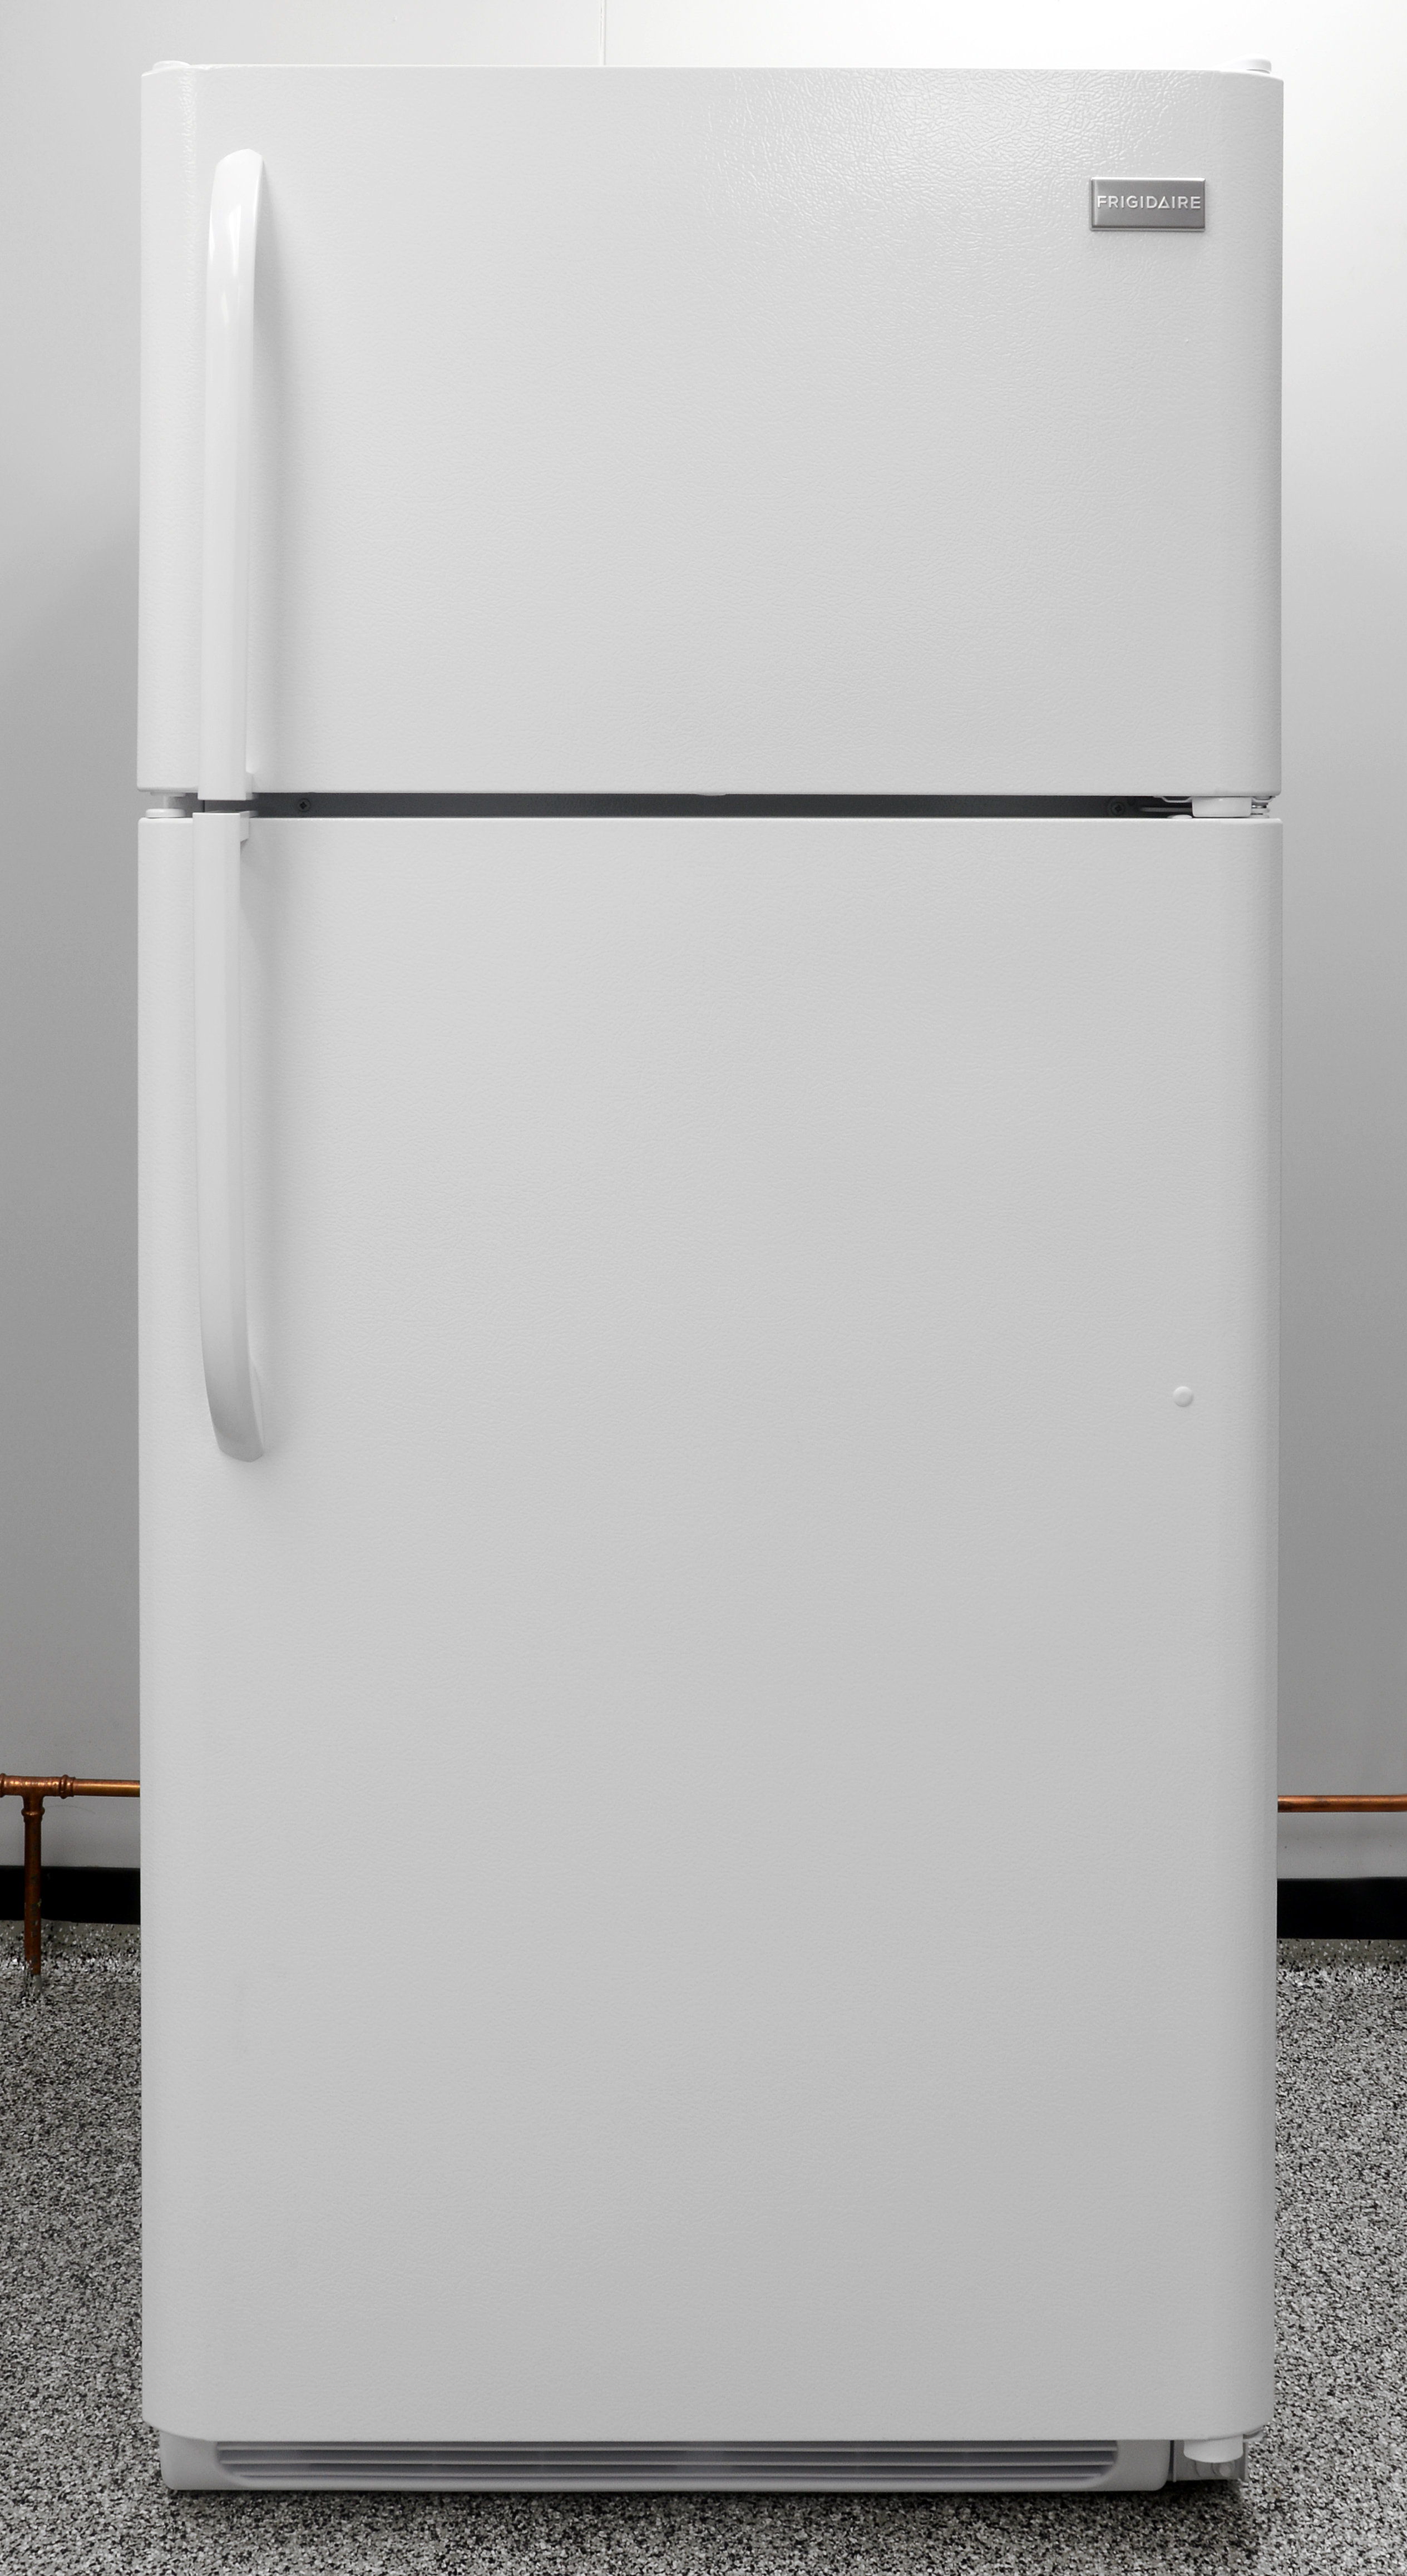 The Frigidaire FFTR1814QW is a basic 18-cubic-foot top freezer.